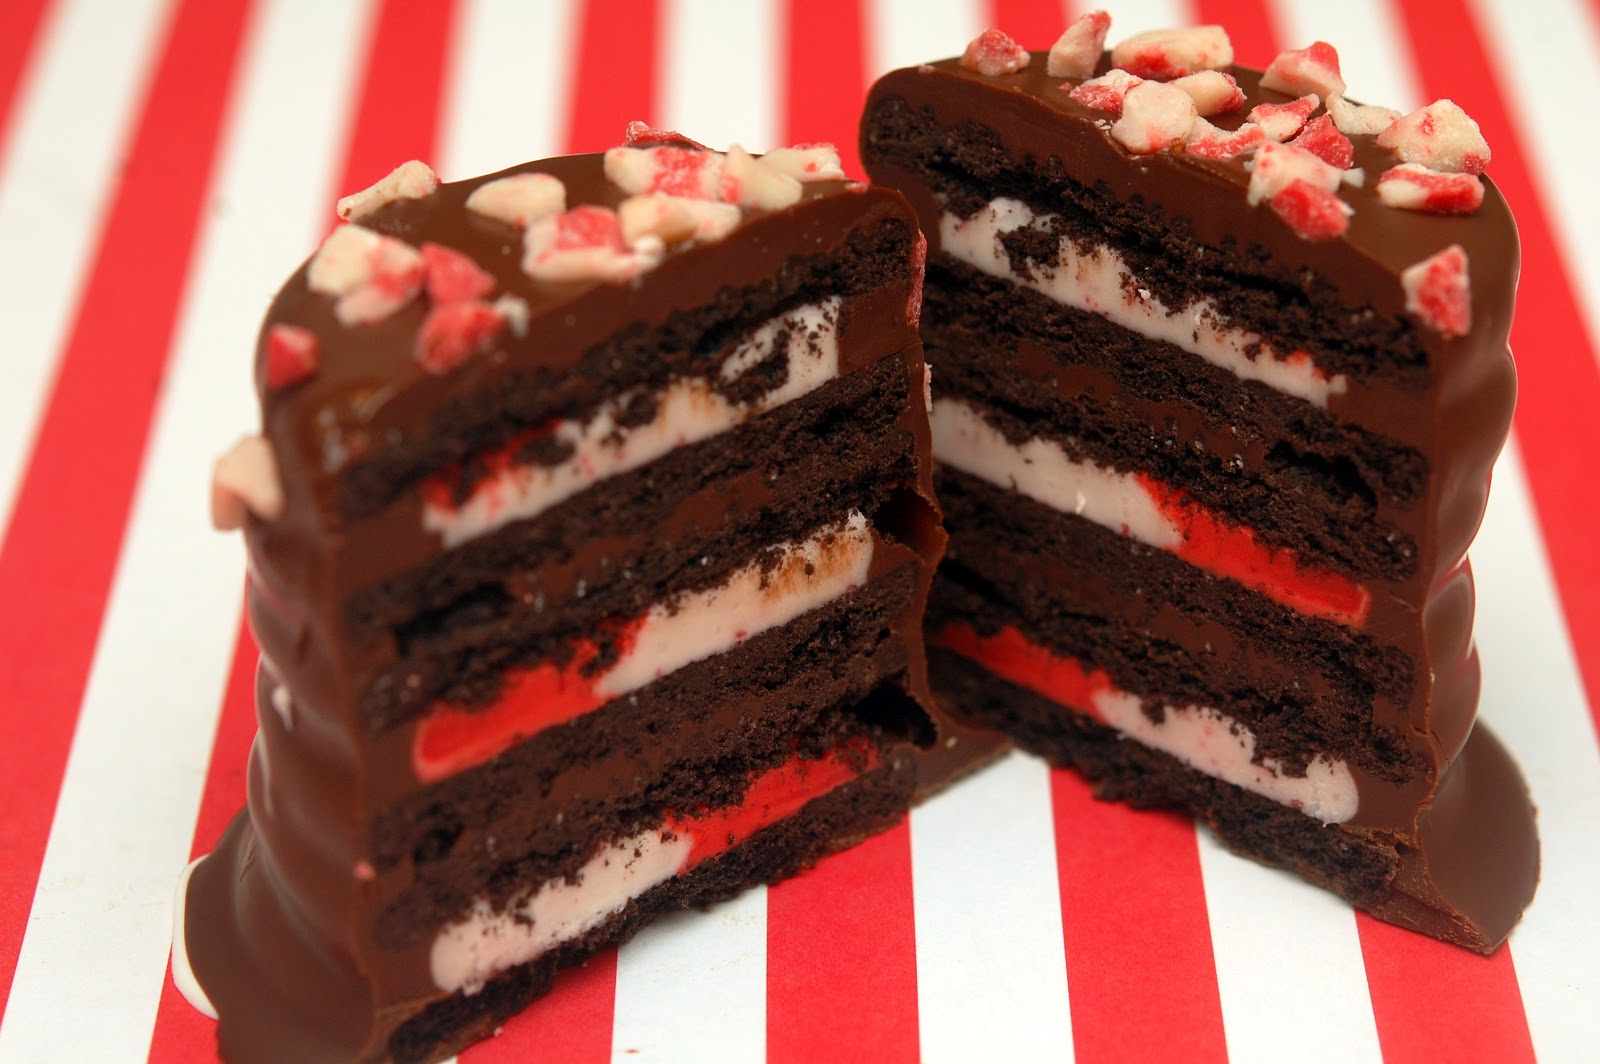 TRIPLE DECKER CANDY CANE OREOS DIPPED IN CHOCOLATE